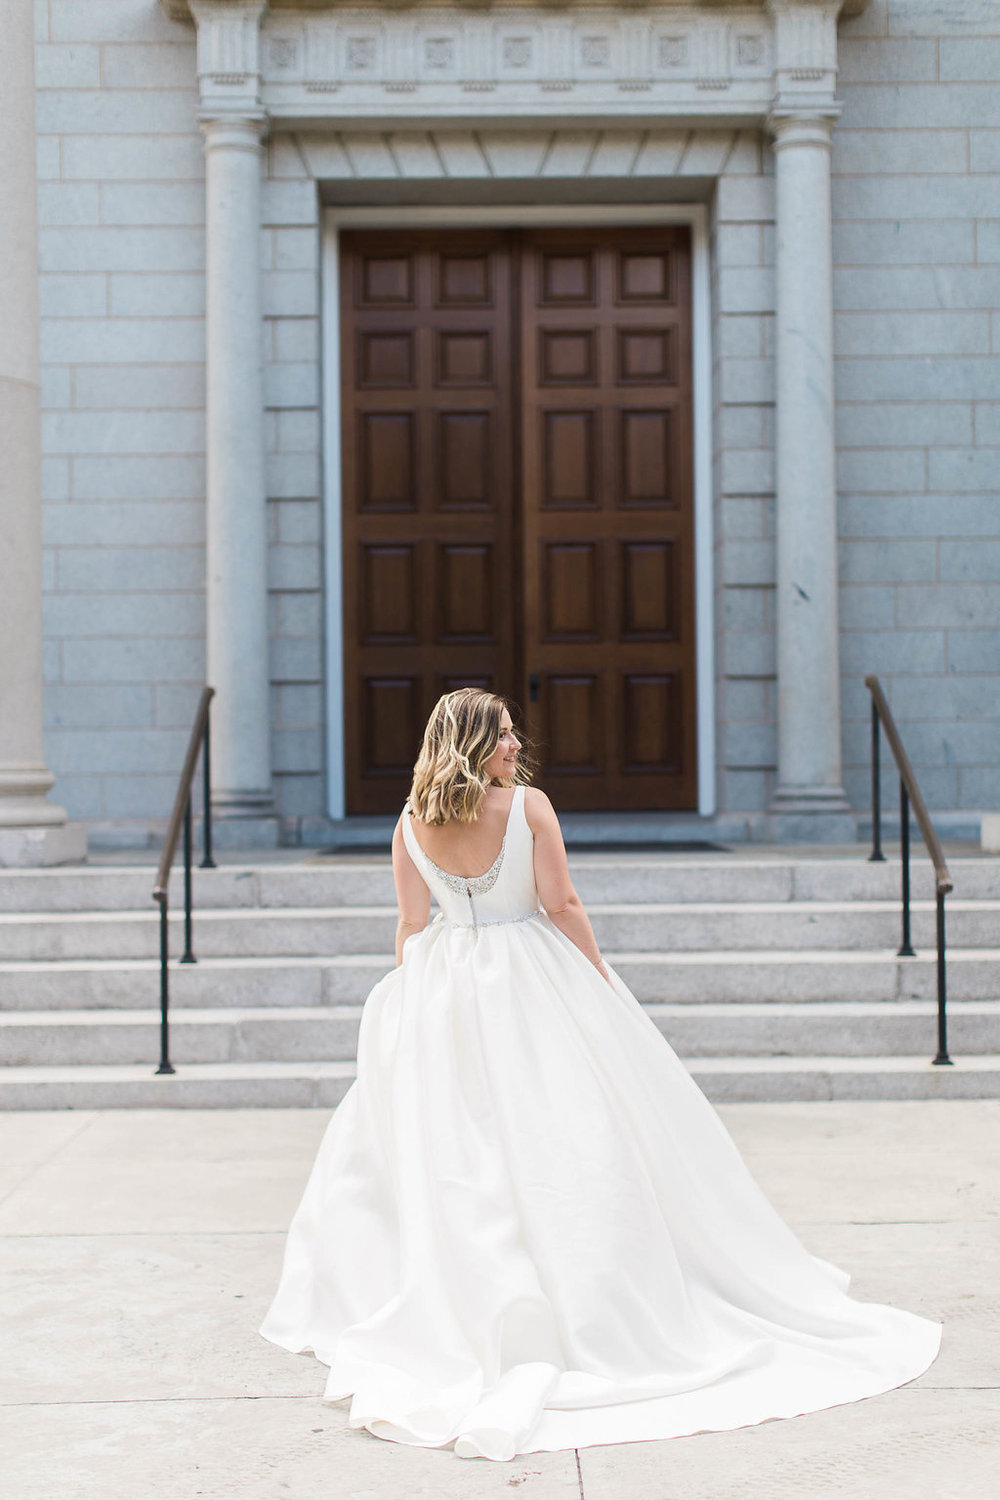 verity-maggie-sottero-ivory-and-beau-bridal-boutique-danielle-george-photography-savannah-bridal-boutique-savannah-weddings-savannah-wedding-planner-savannah-bridal-2.JPG